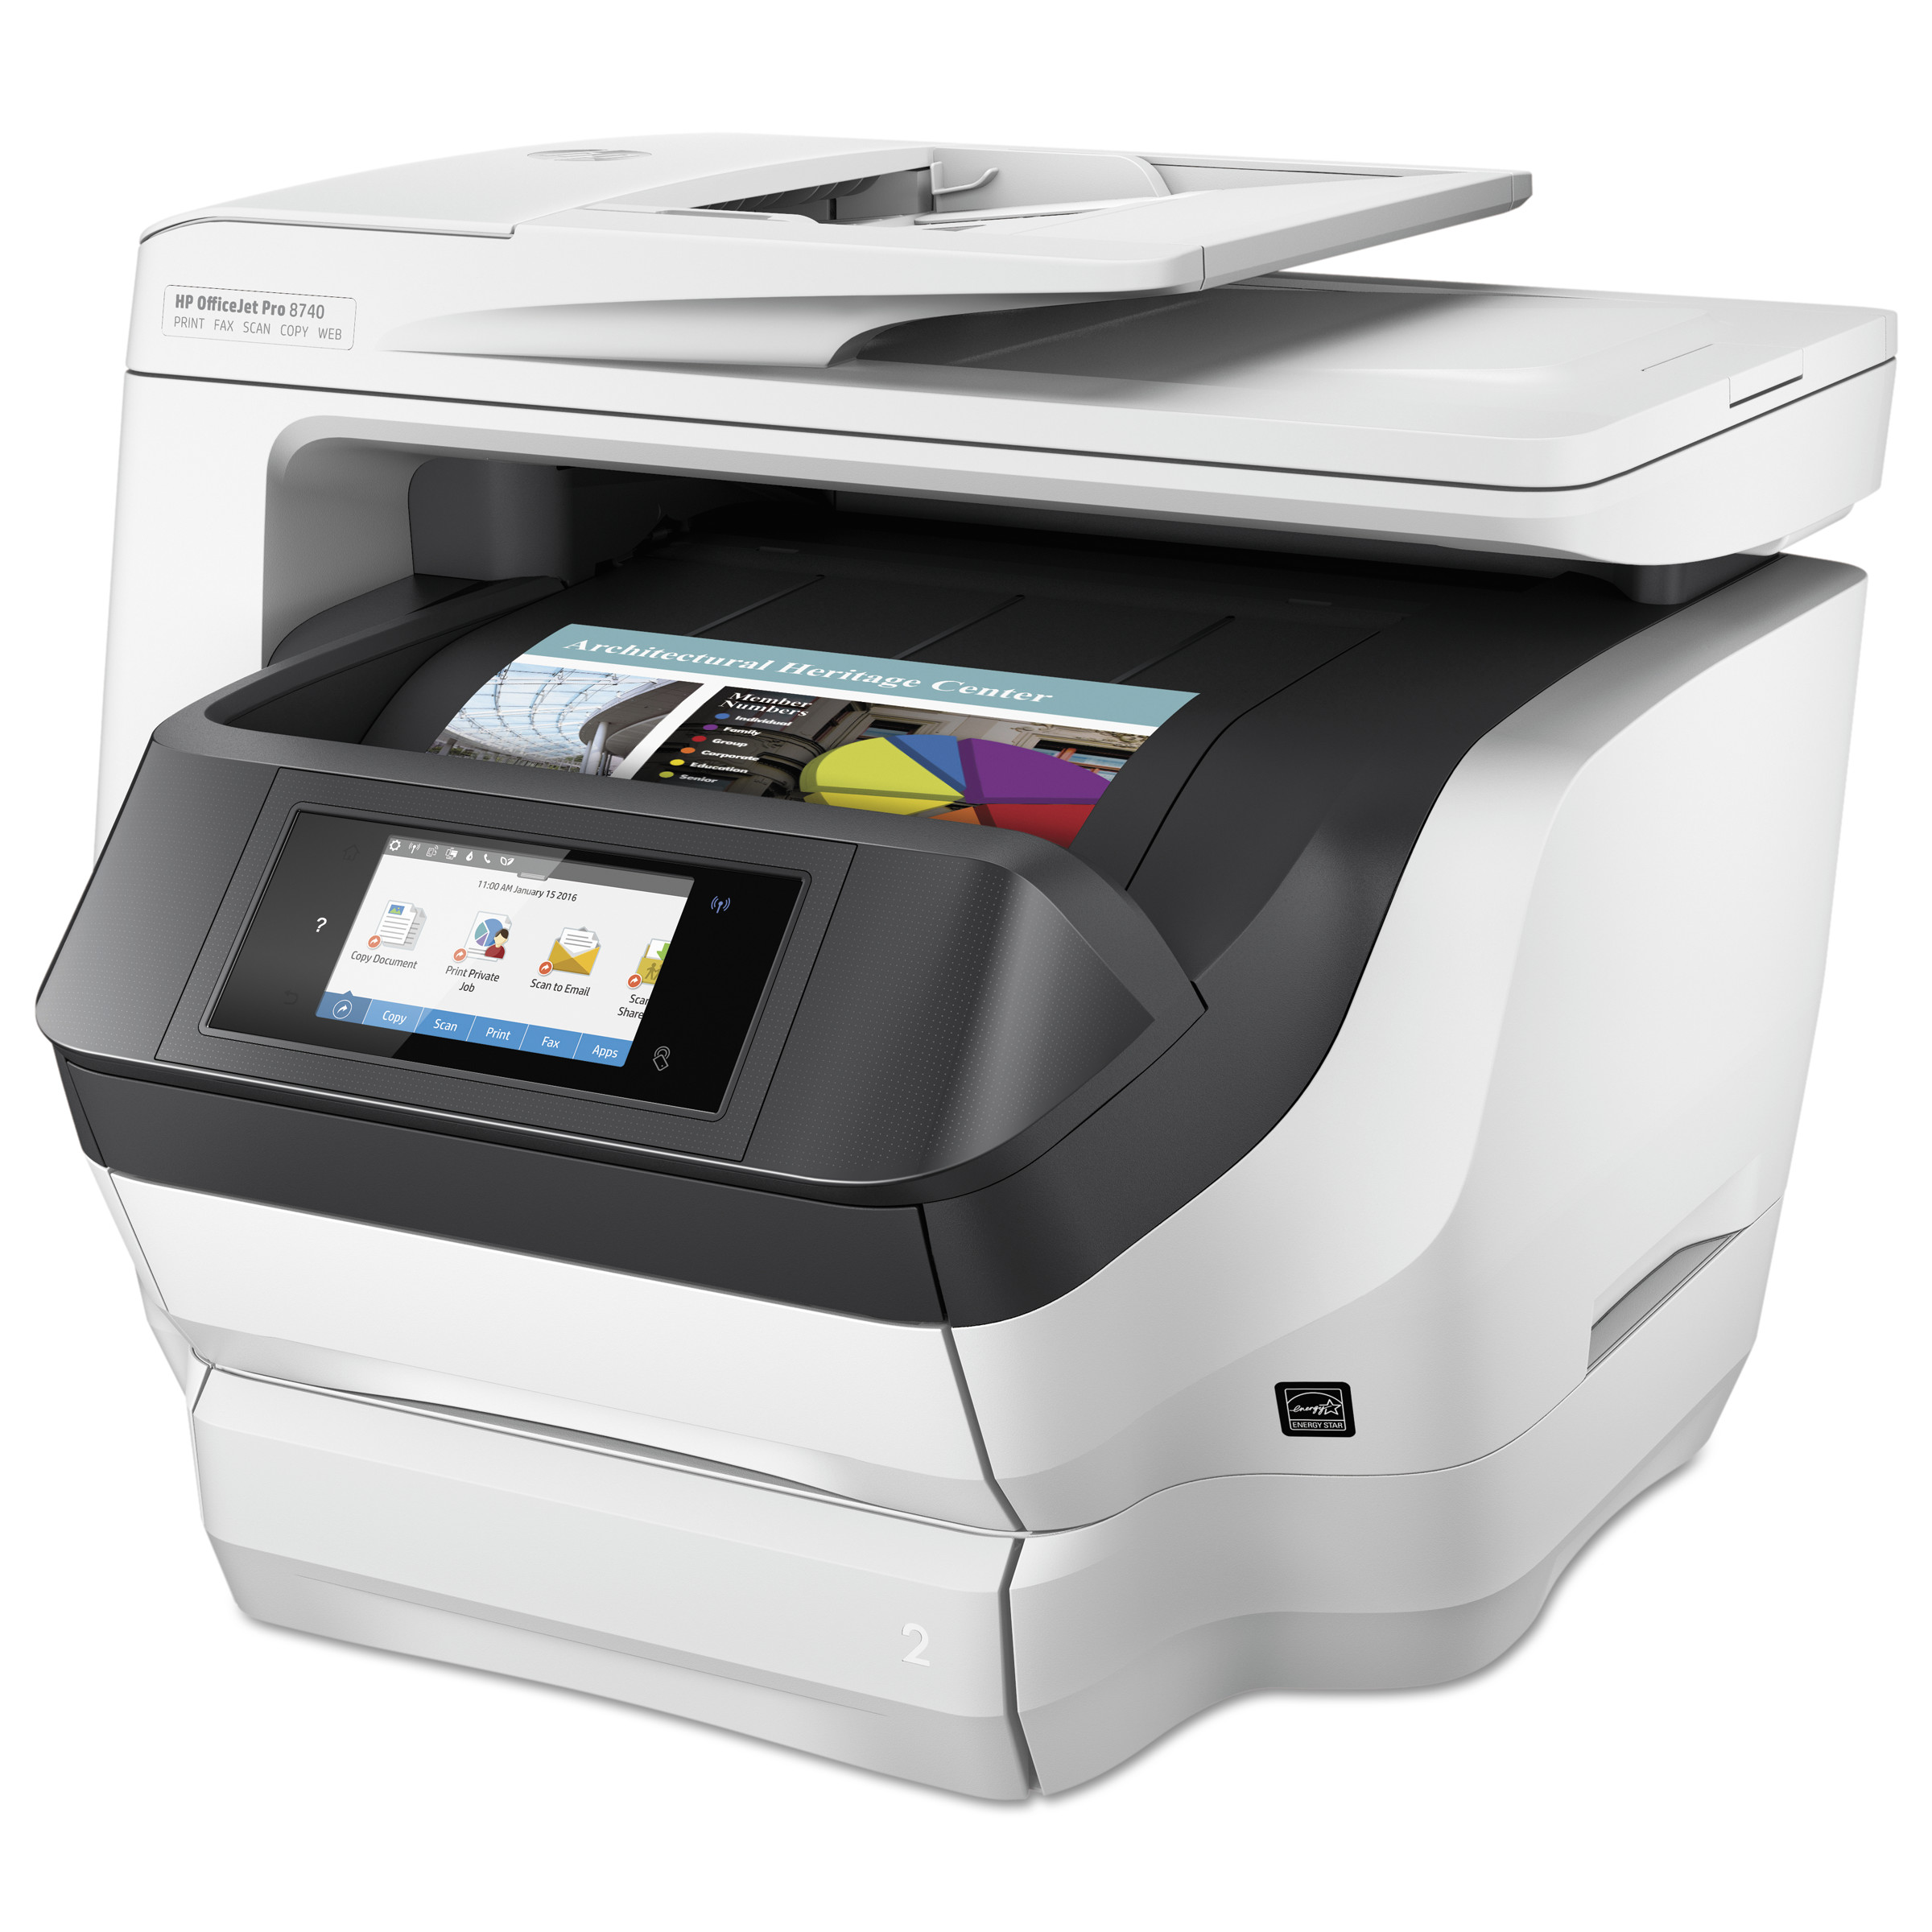 HP OfficeJet Pro 8740 All-in-One Printer, Copy Fax Print Scan by HP